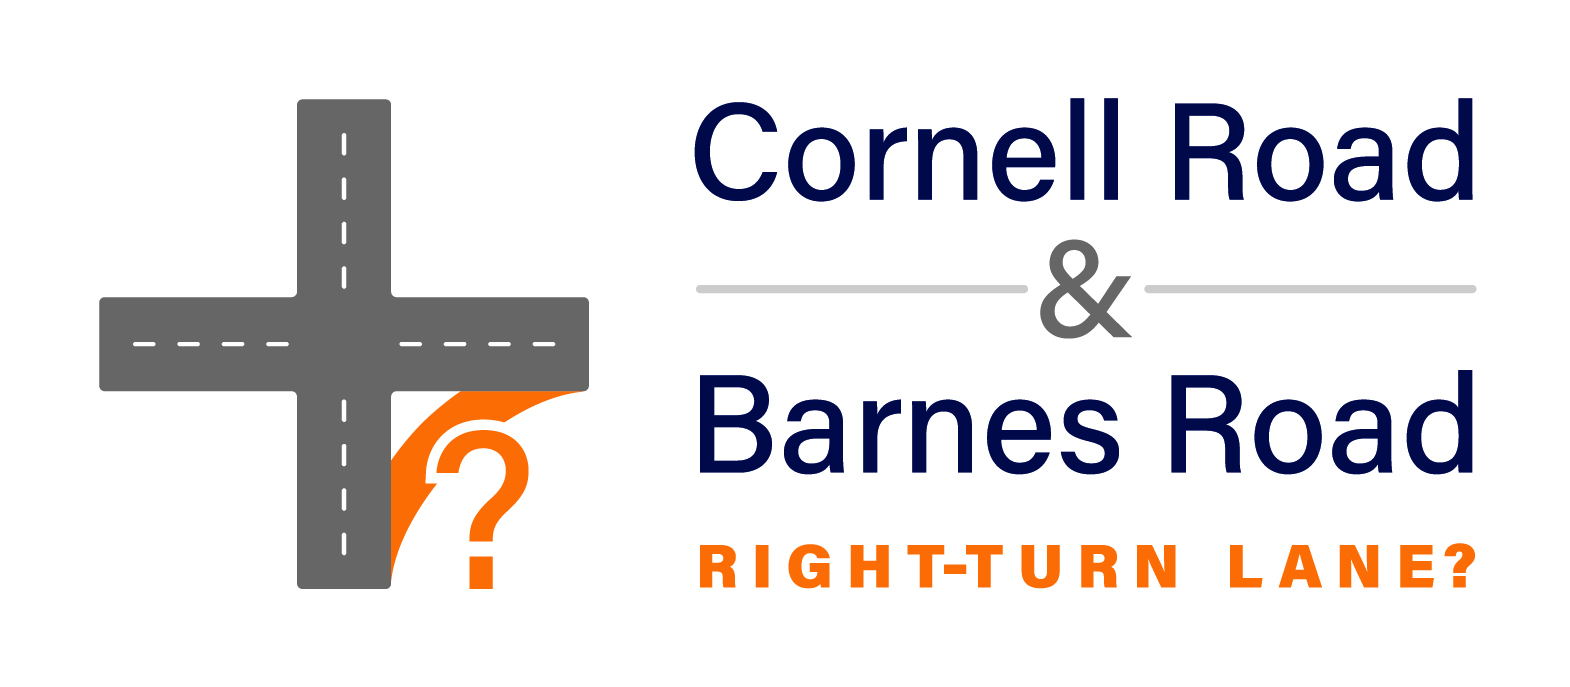 A possible eastbound right-turn lane from Cornell Road onto southbound Barnes Road is being evaluated by Washington County Department of Land Use & Transportation (LUT) to improve safety and reduce congestion.